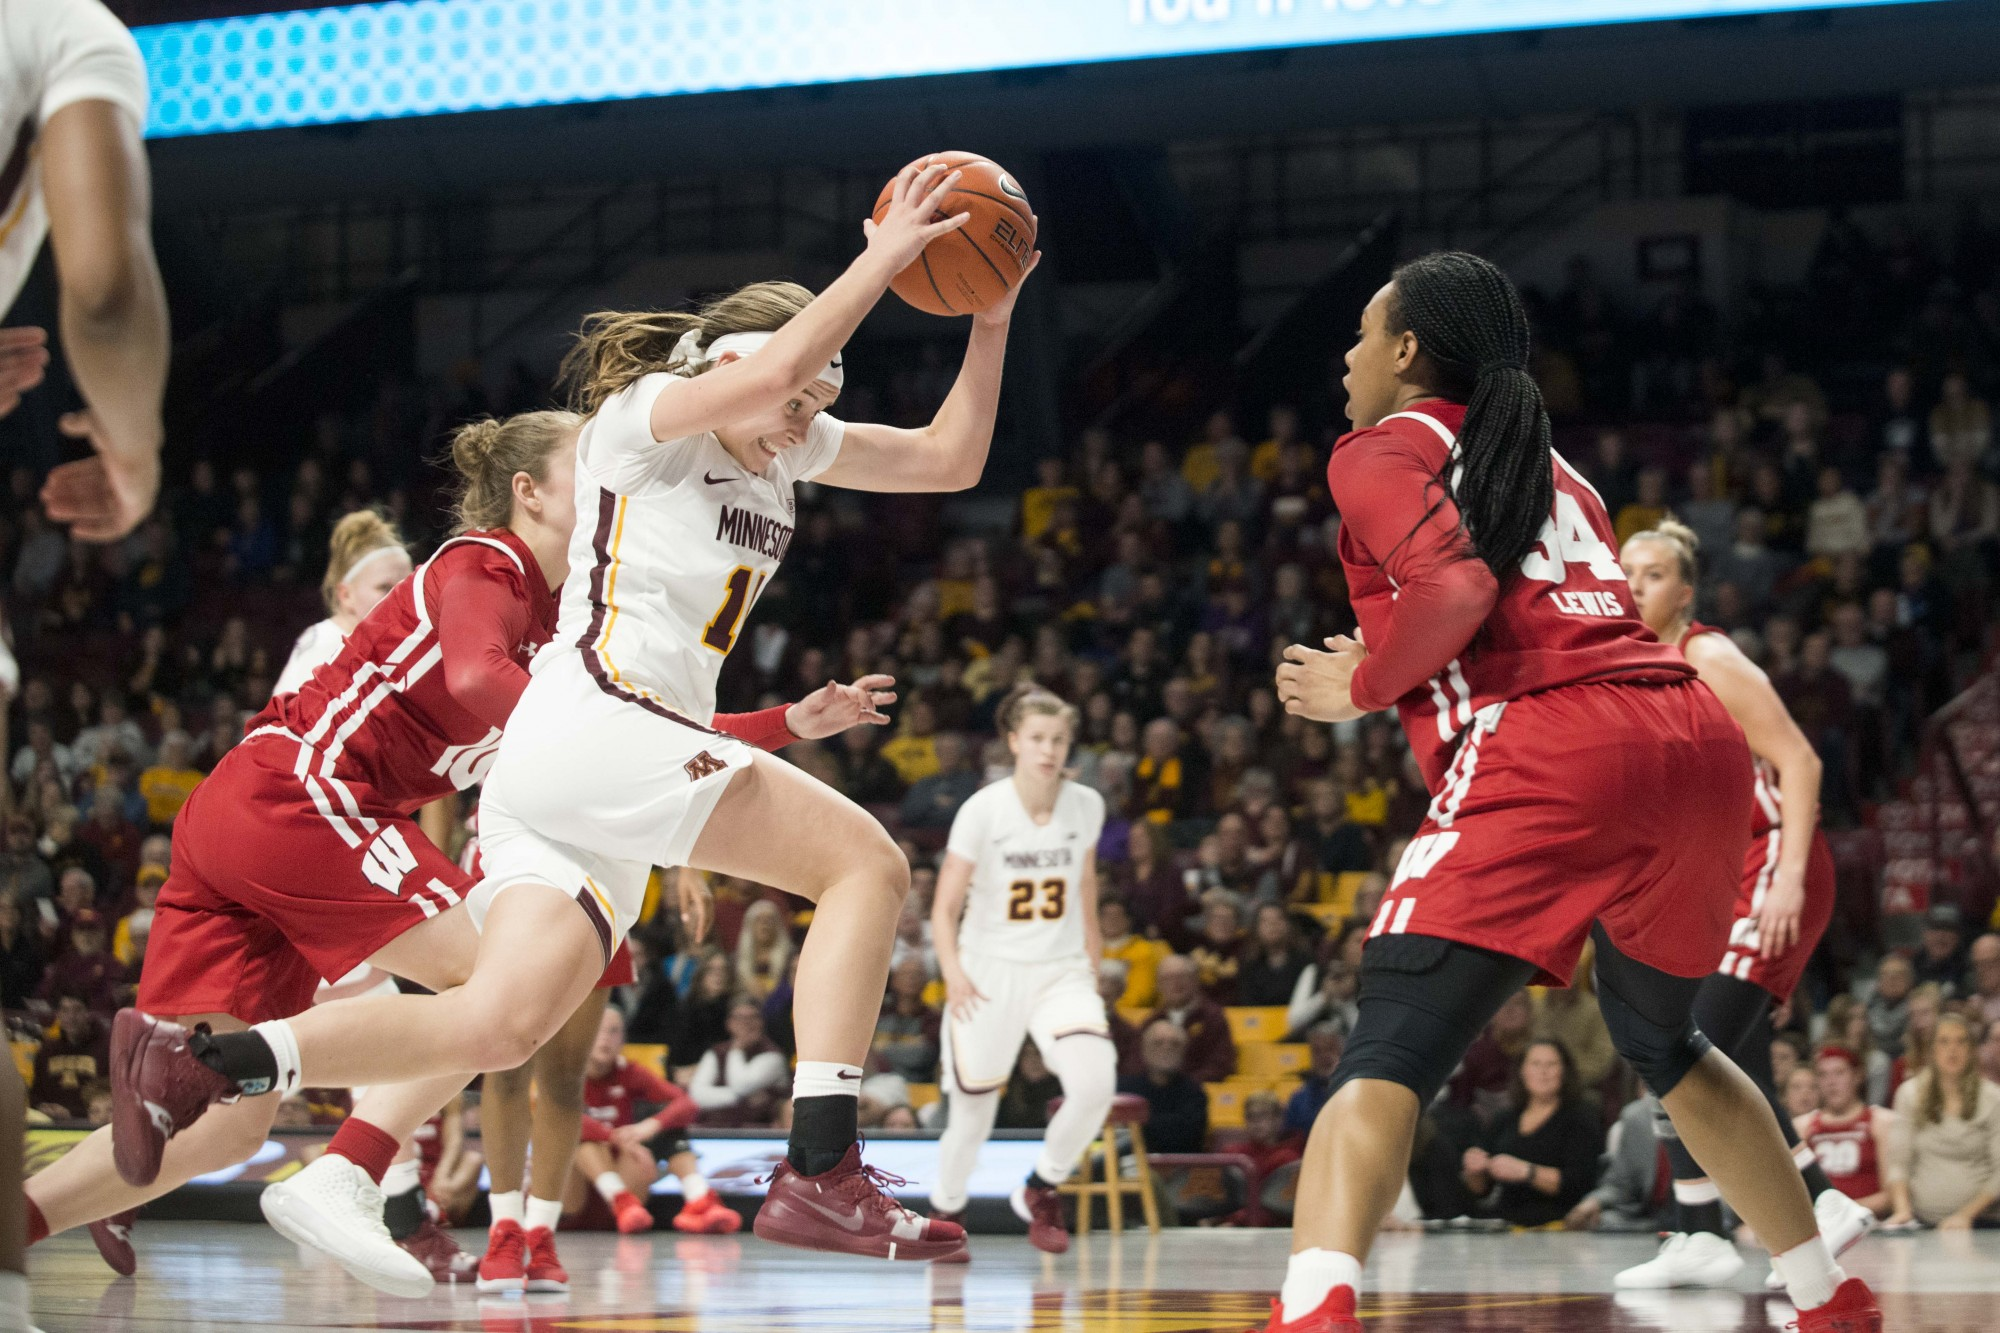 Guard Sara Scalia drives towards the hoop at Williams Arena on Wednesday, Jan. 22. The Gophers were defeated by Wisconsin 72-62.